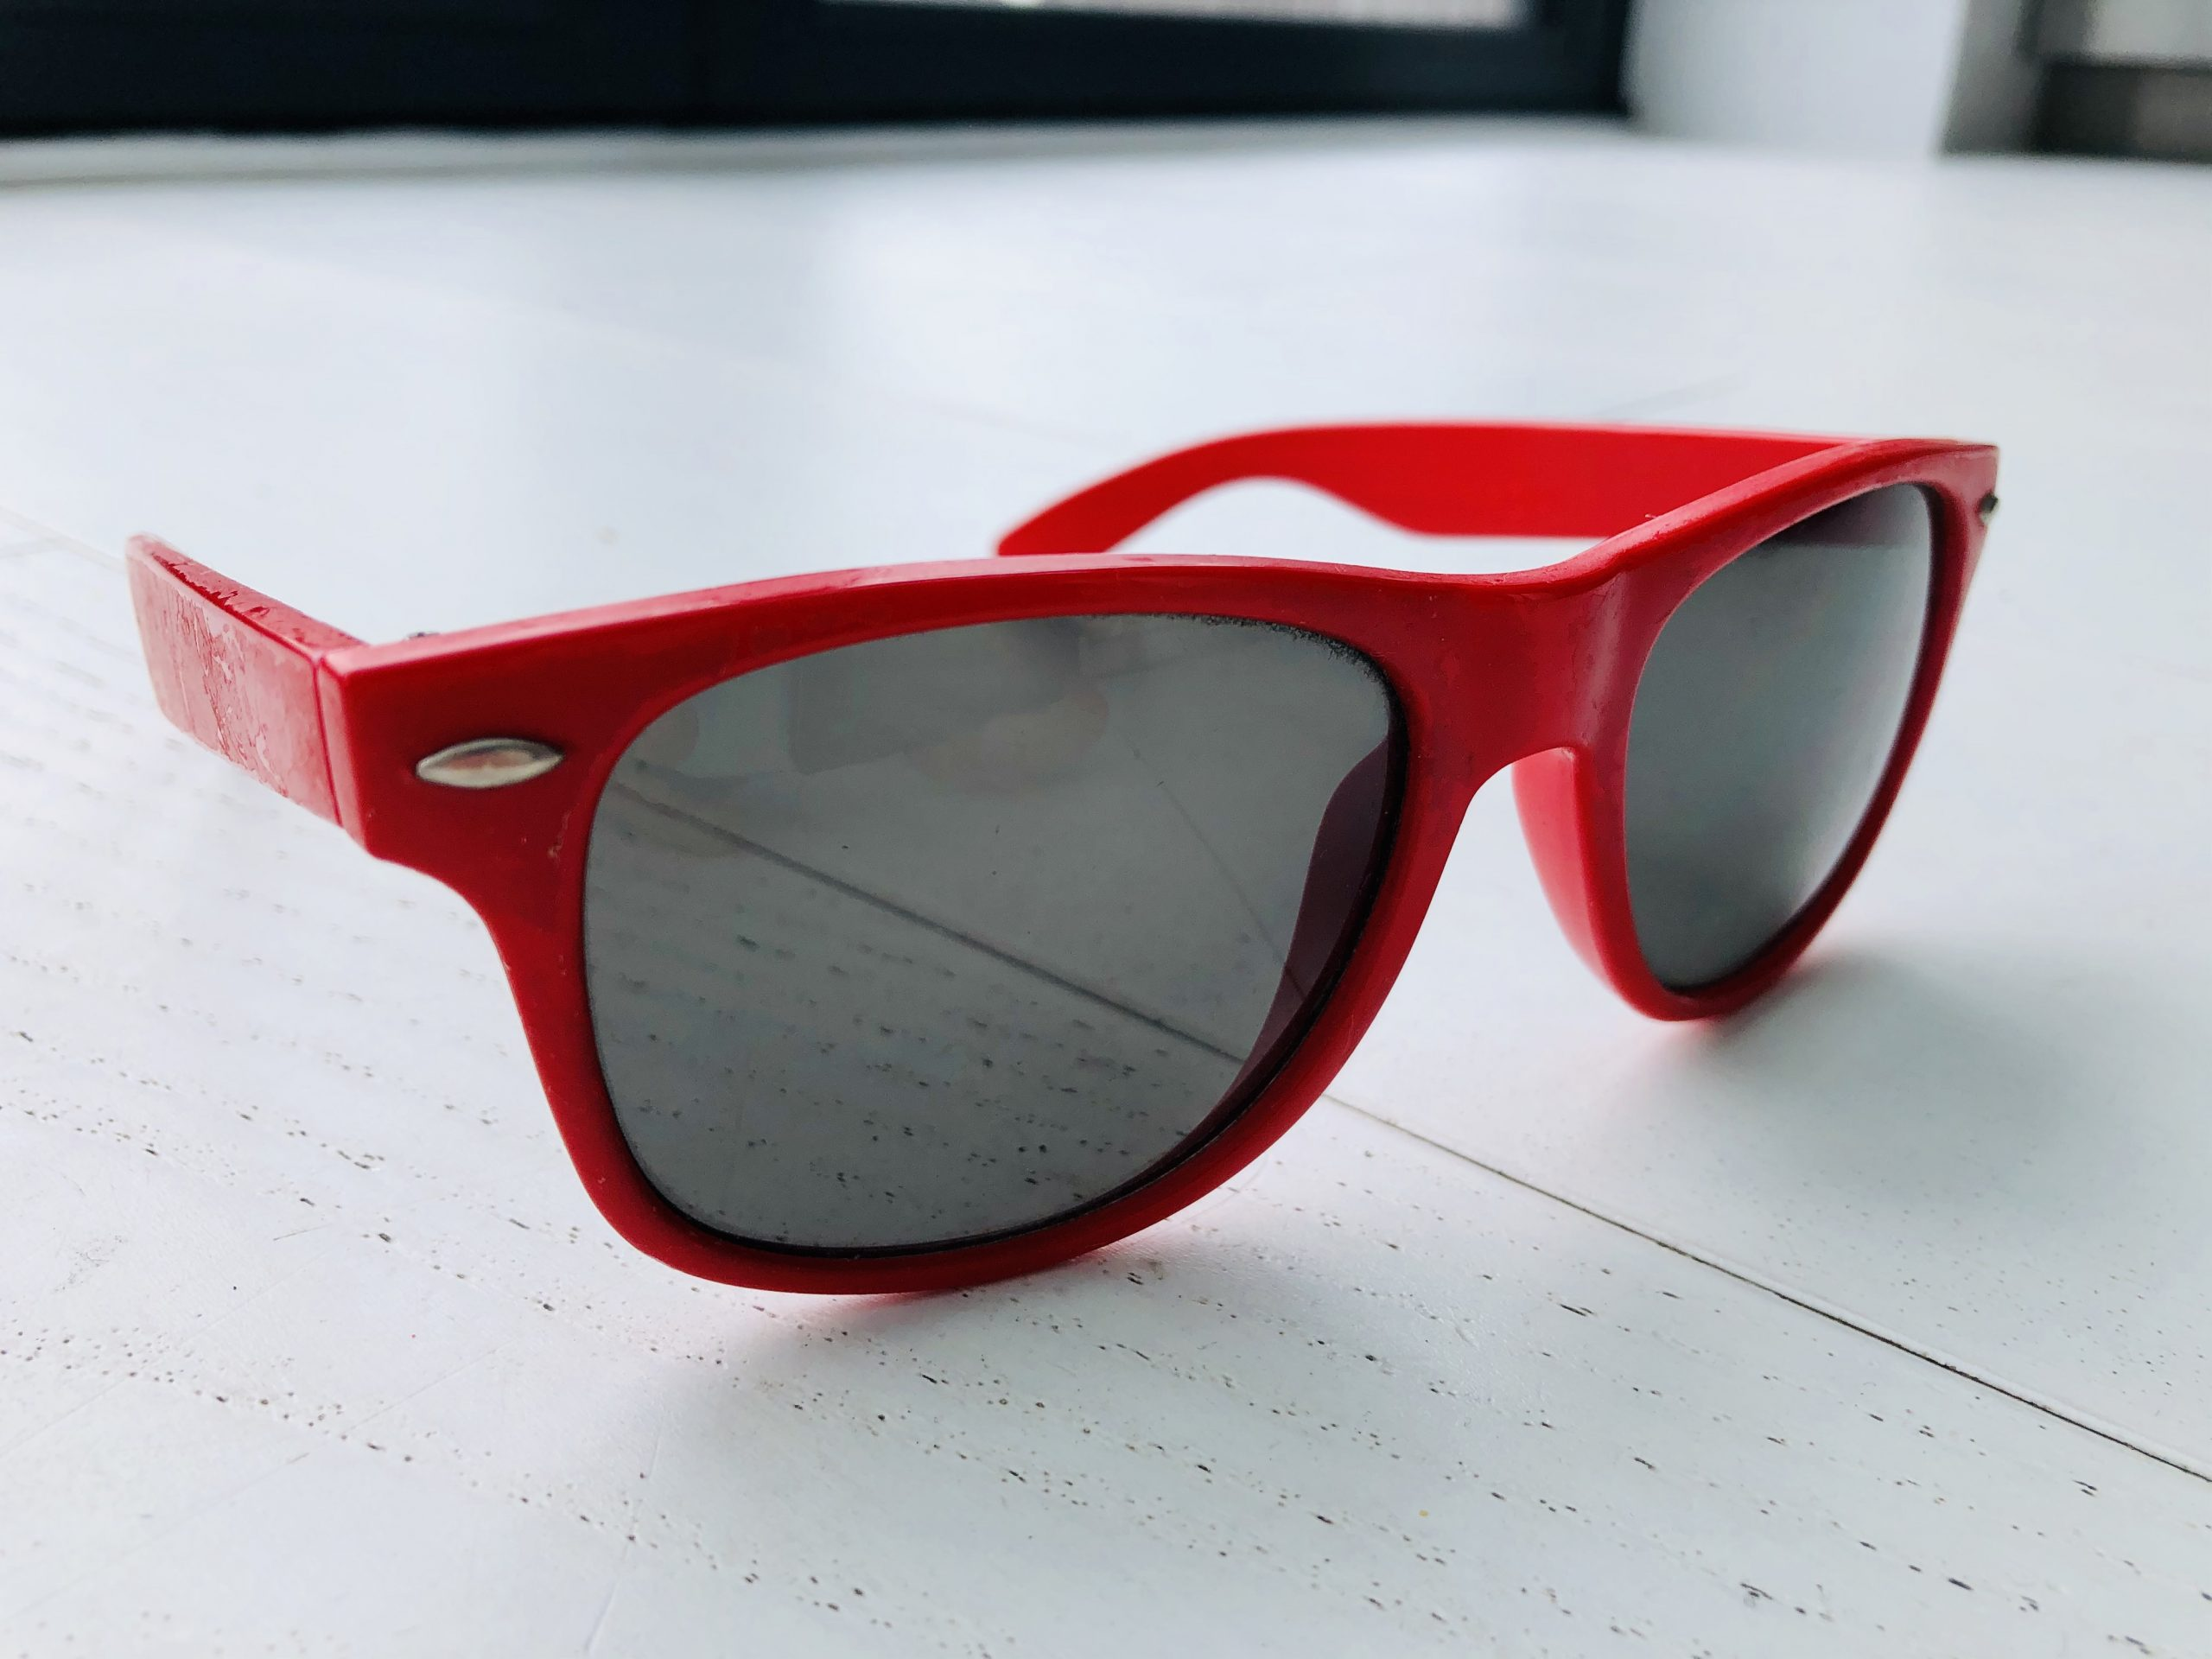 Why I wear red sunglasses